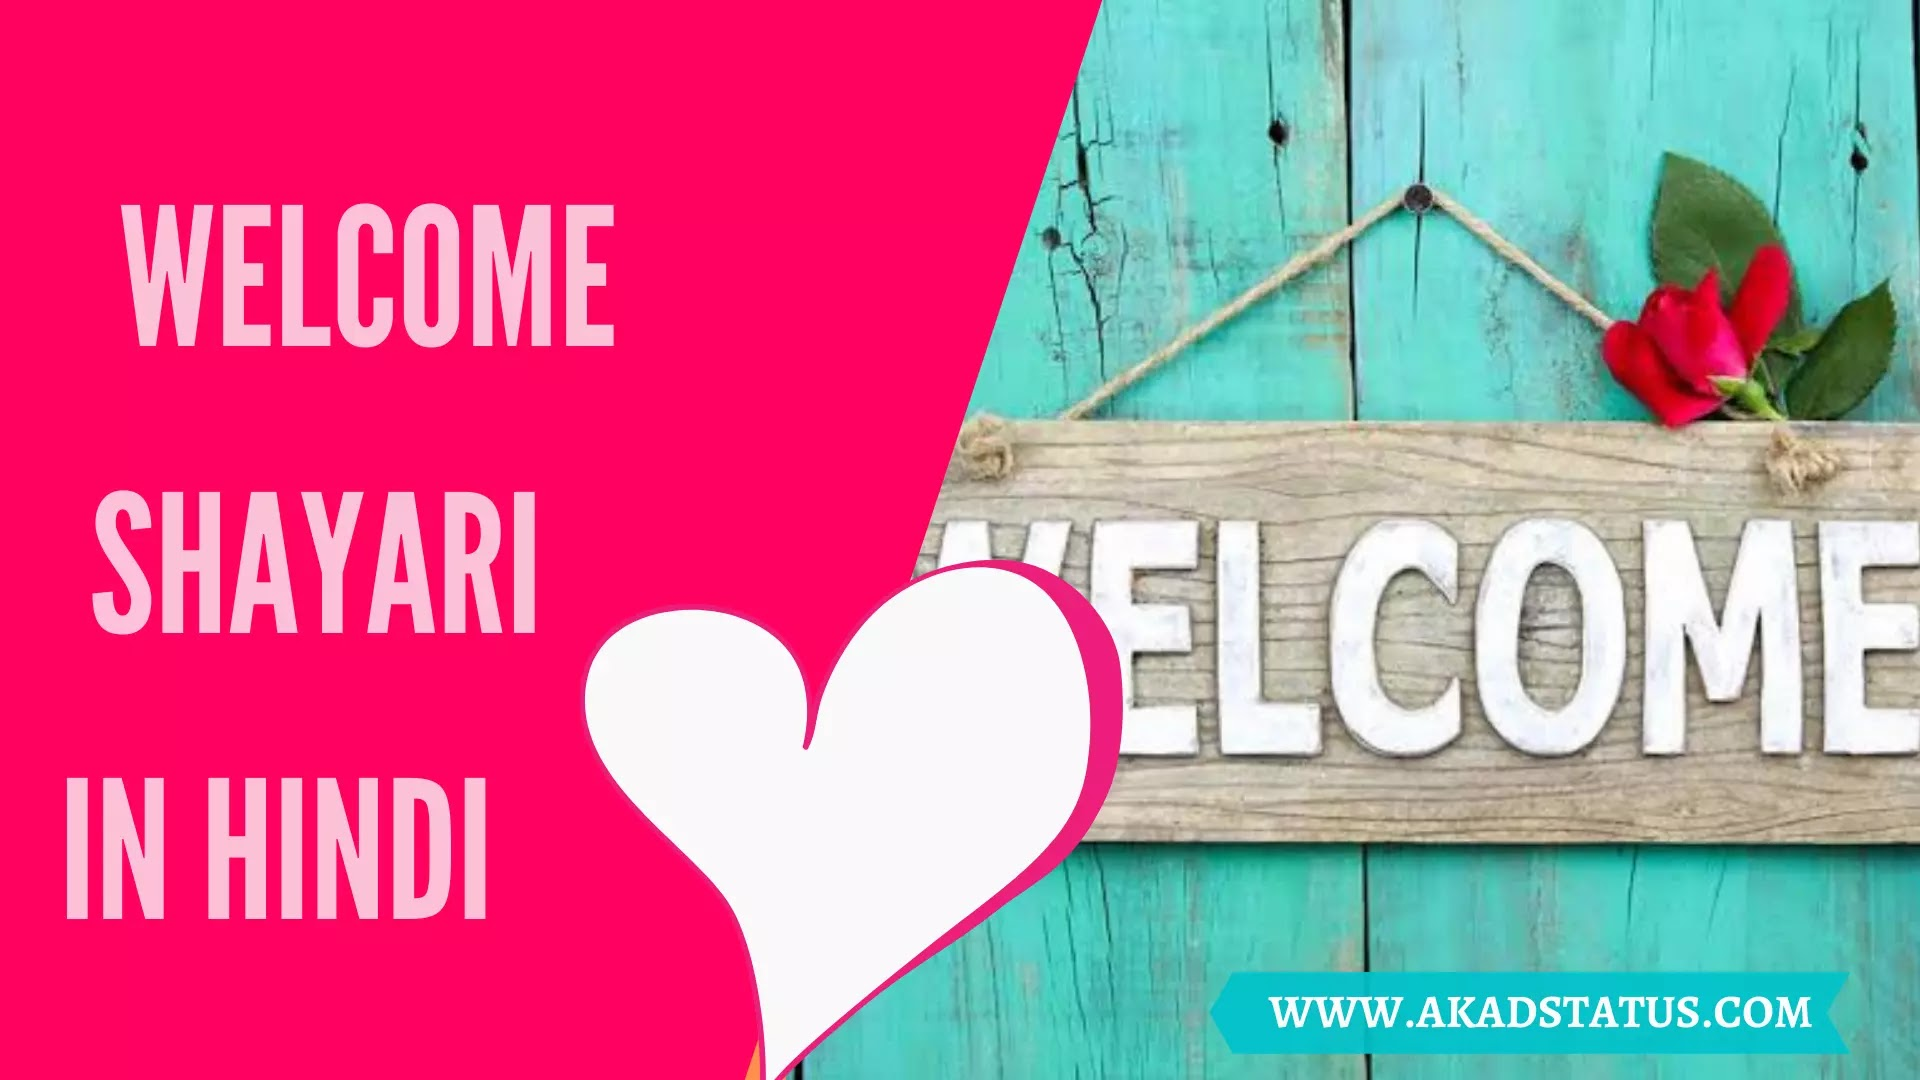 Welcome Shayari in Hindi, स्वागत शायरी, Welcome shayari in english, Anchoring Shayari in Hindi, Welcome Quotes in Hindi, Welcome Shayari in Hindi for Farewell, Welcome friend Shayari in Hindi